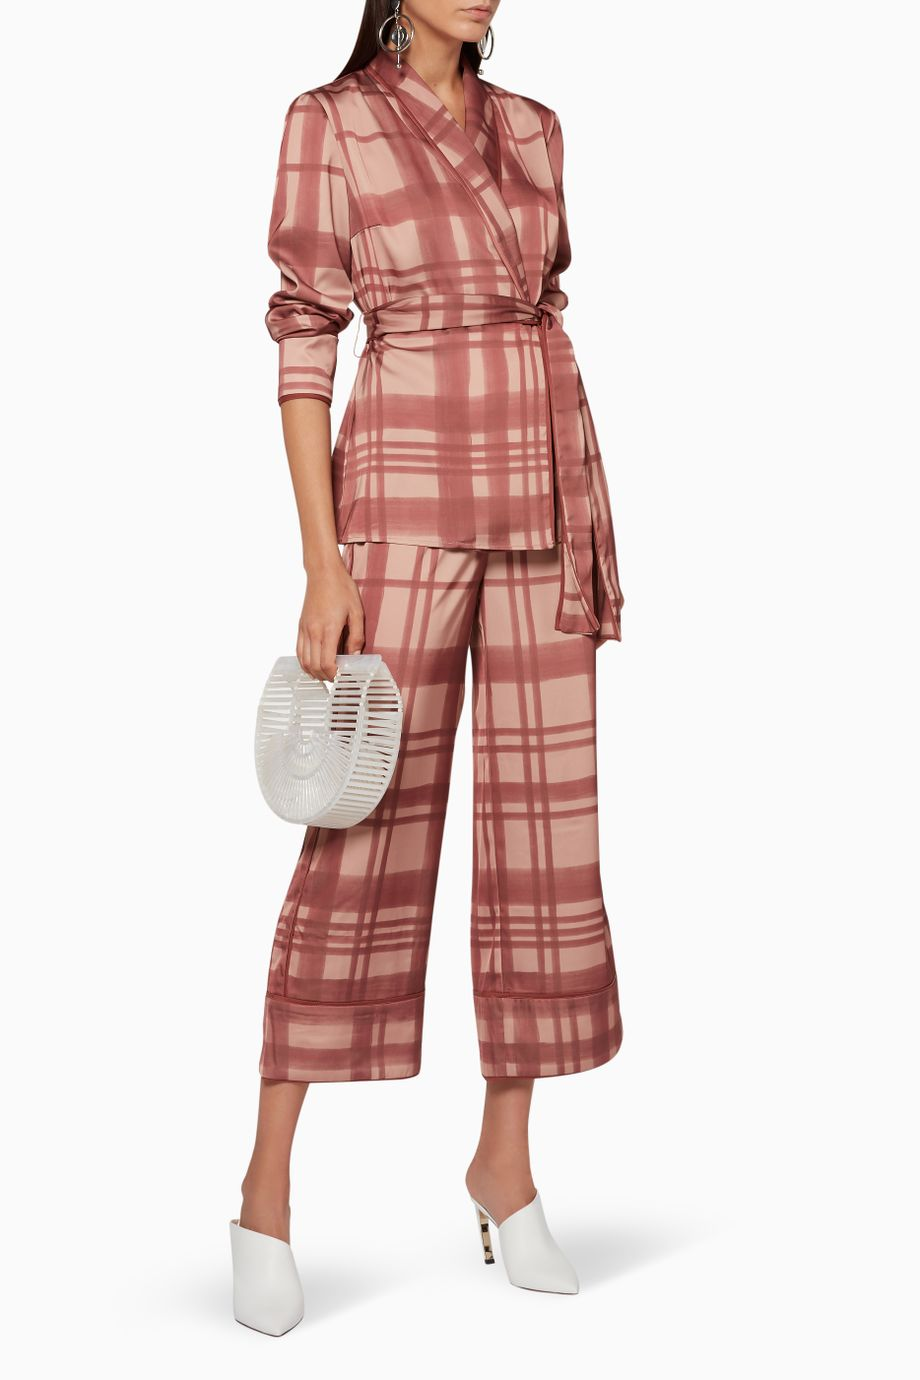 SIMPLE THINGS co-ord check wrap top/jacket - mahogany check